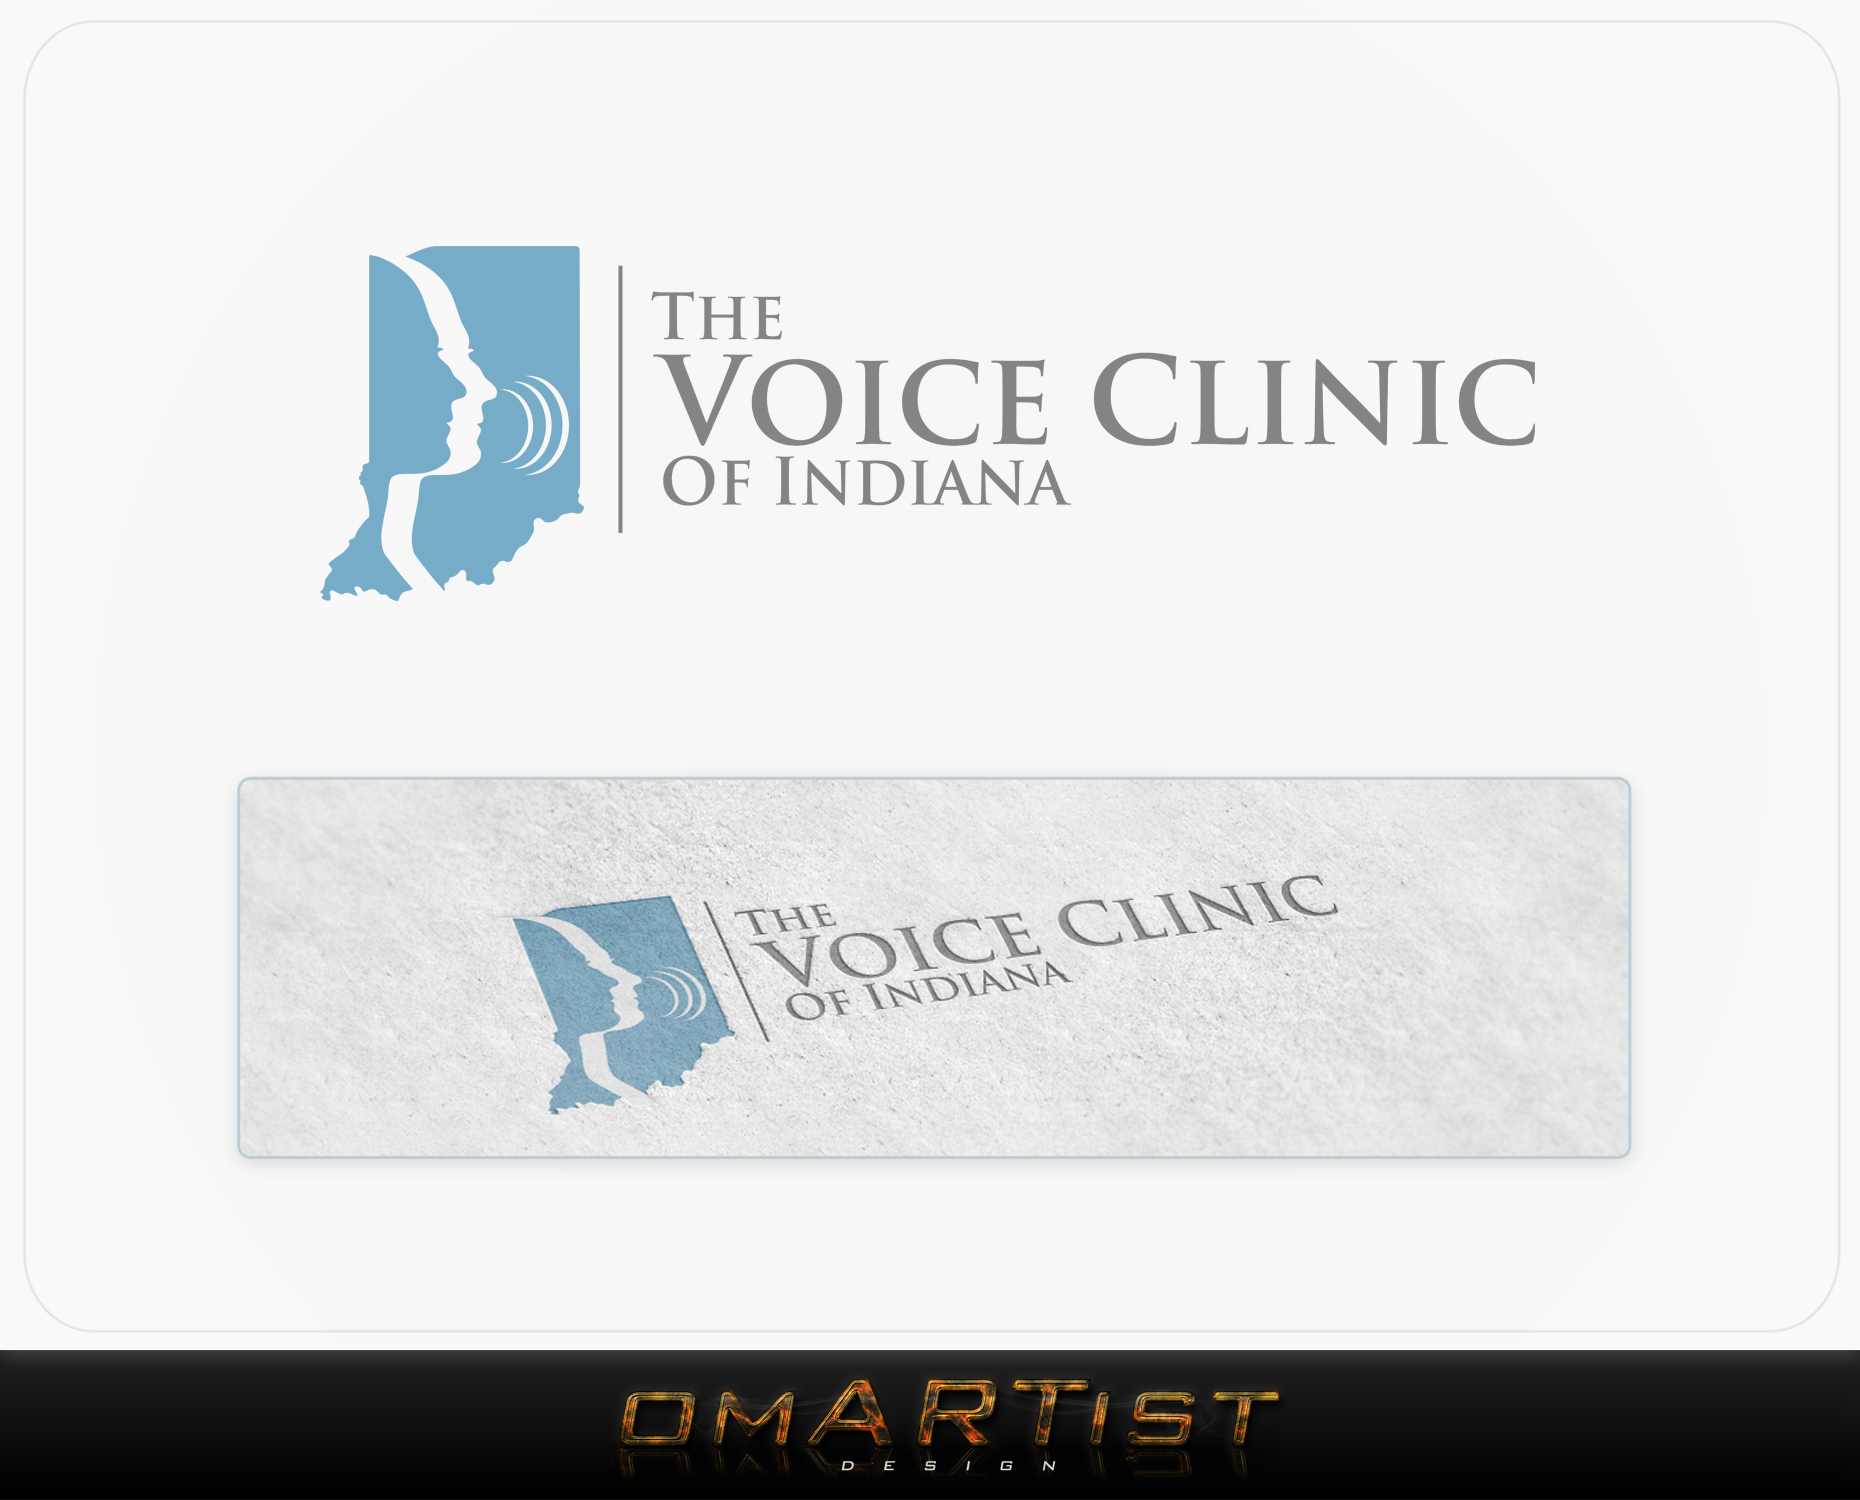 Logo Design by omARTist - Entry No. 2 in the Logo Design Contest Logo Design for The Voice Clinic of Indiana.